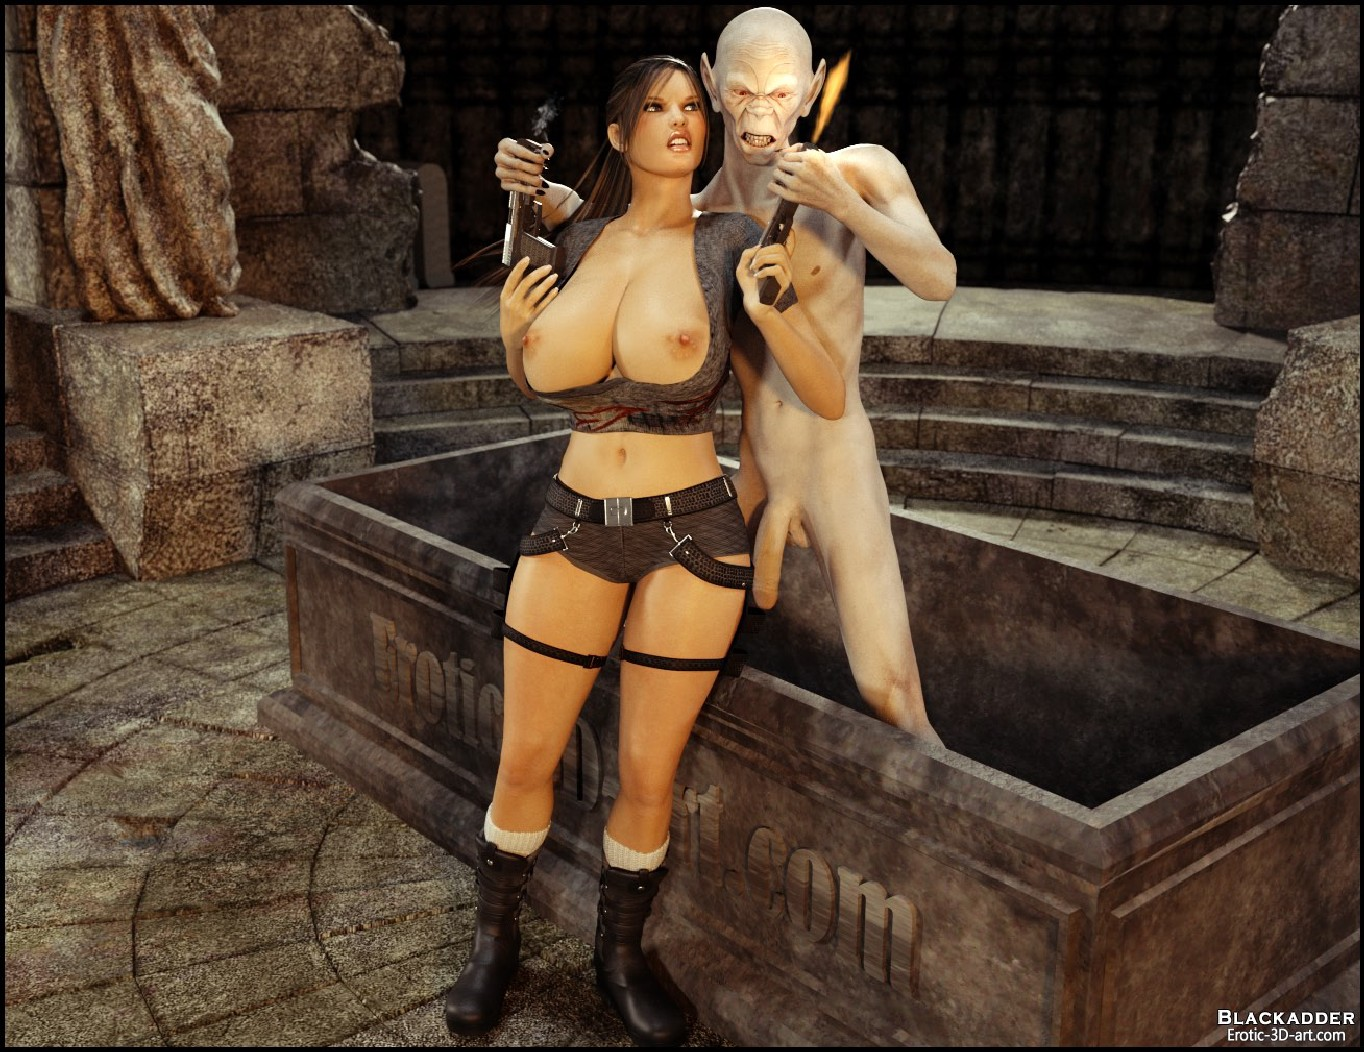 Tomb raider sex 3d 3gp porn movies